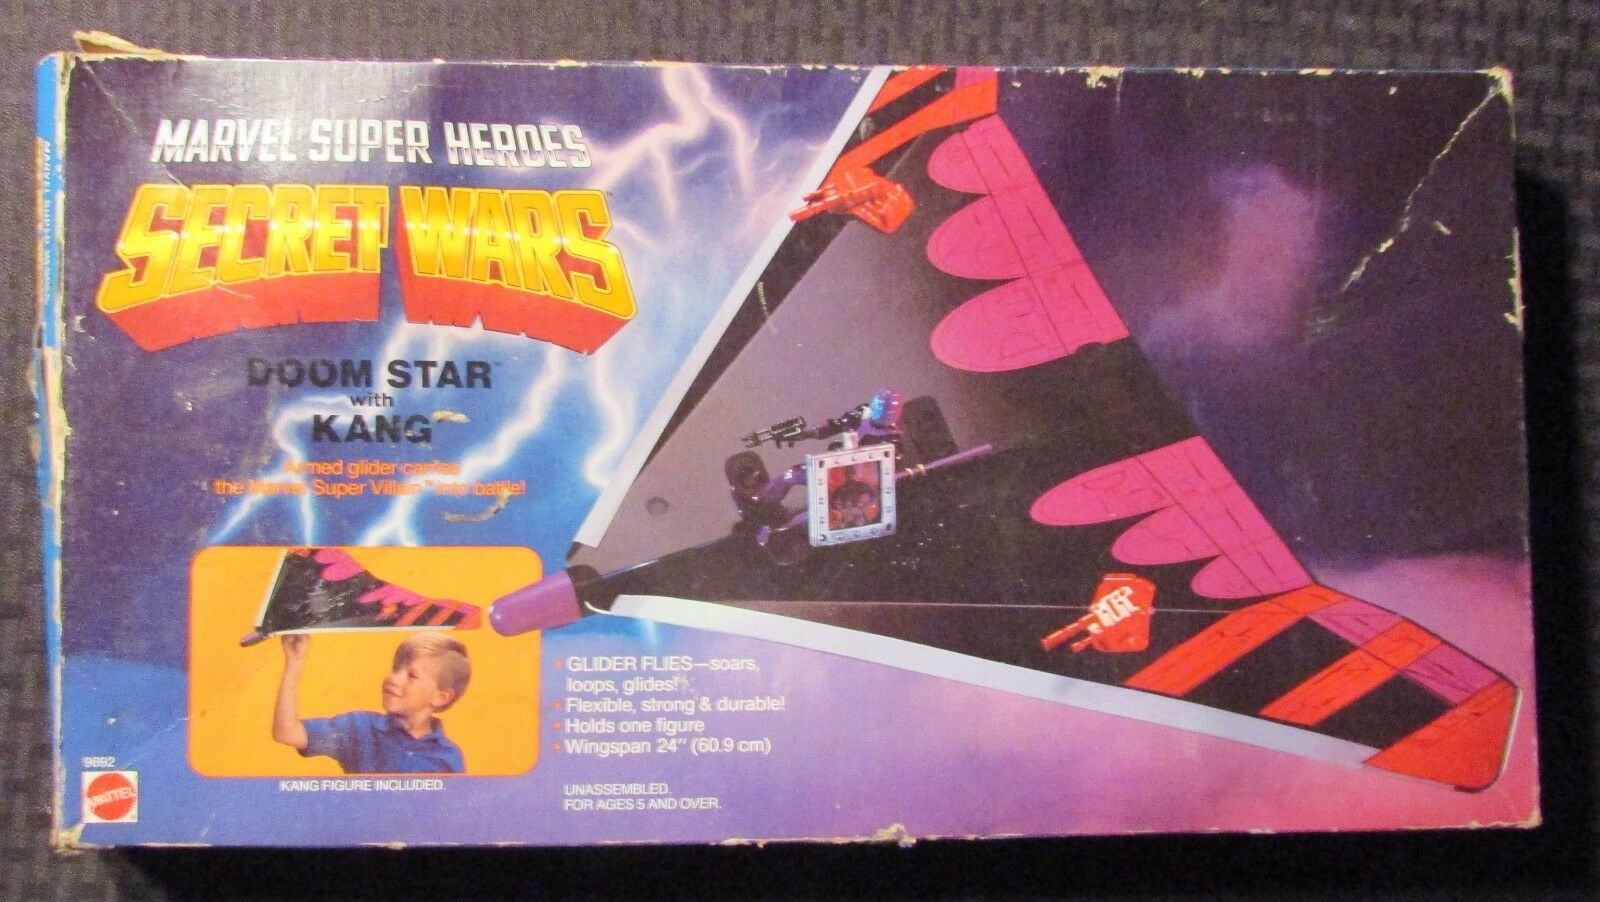 1984 SECRET WARS Doom Star with Kang NM in Box C-2.5 Mattel 9692